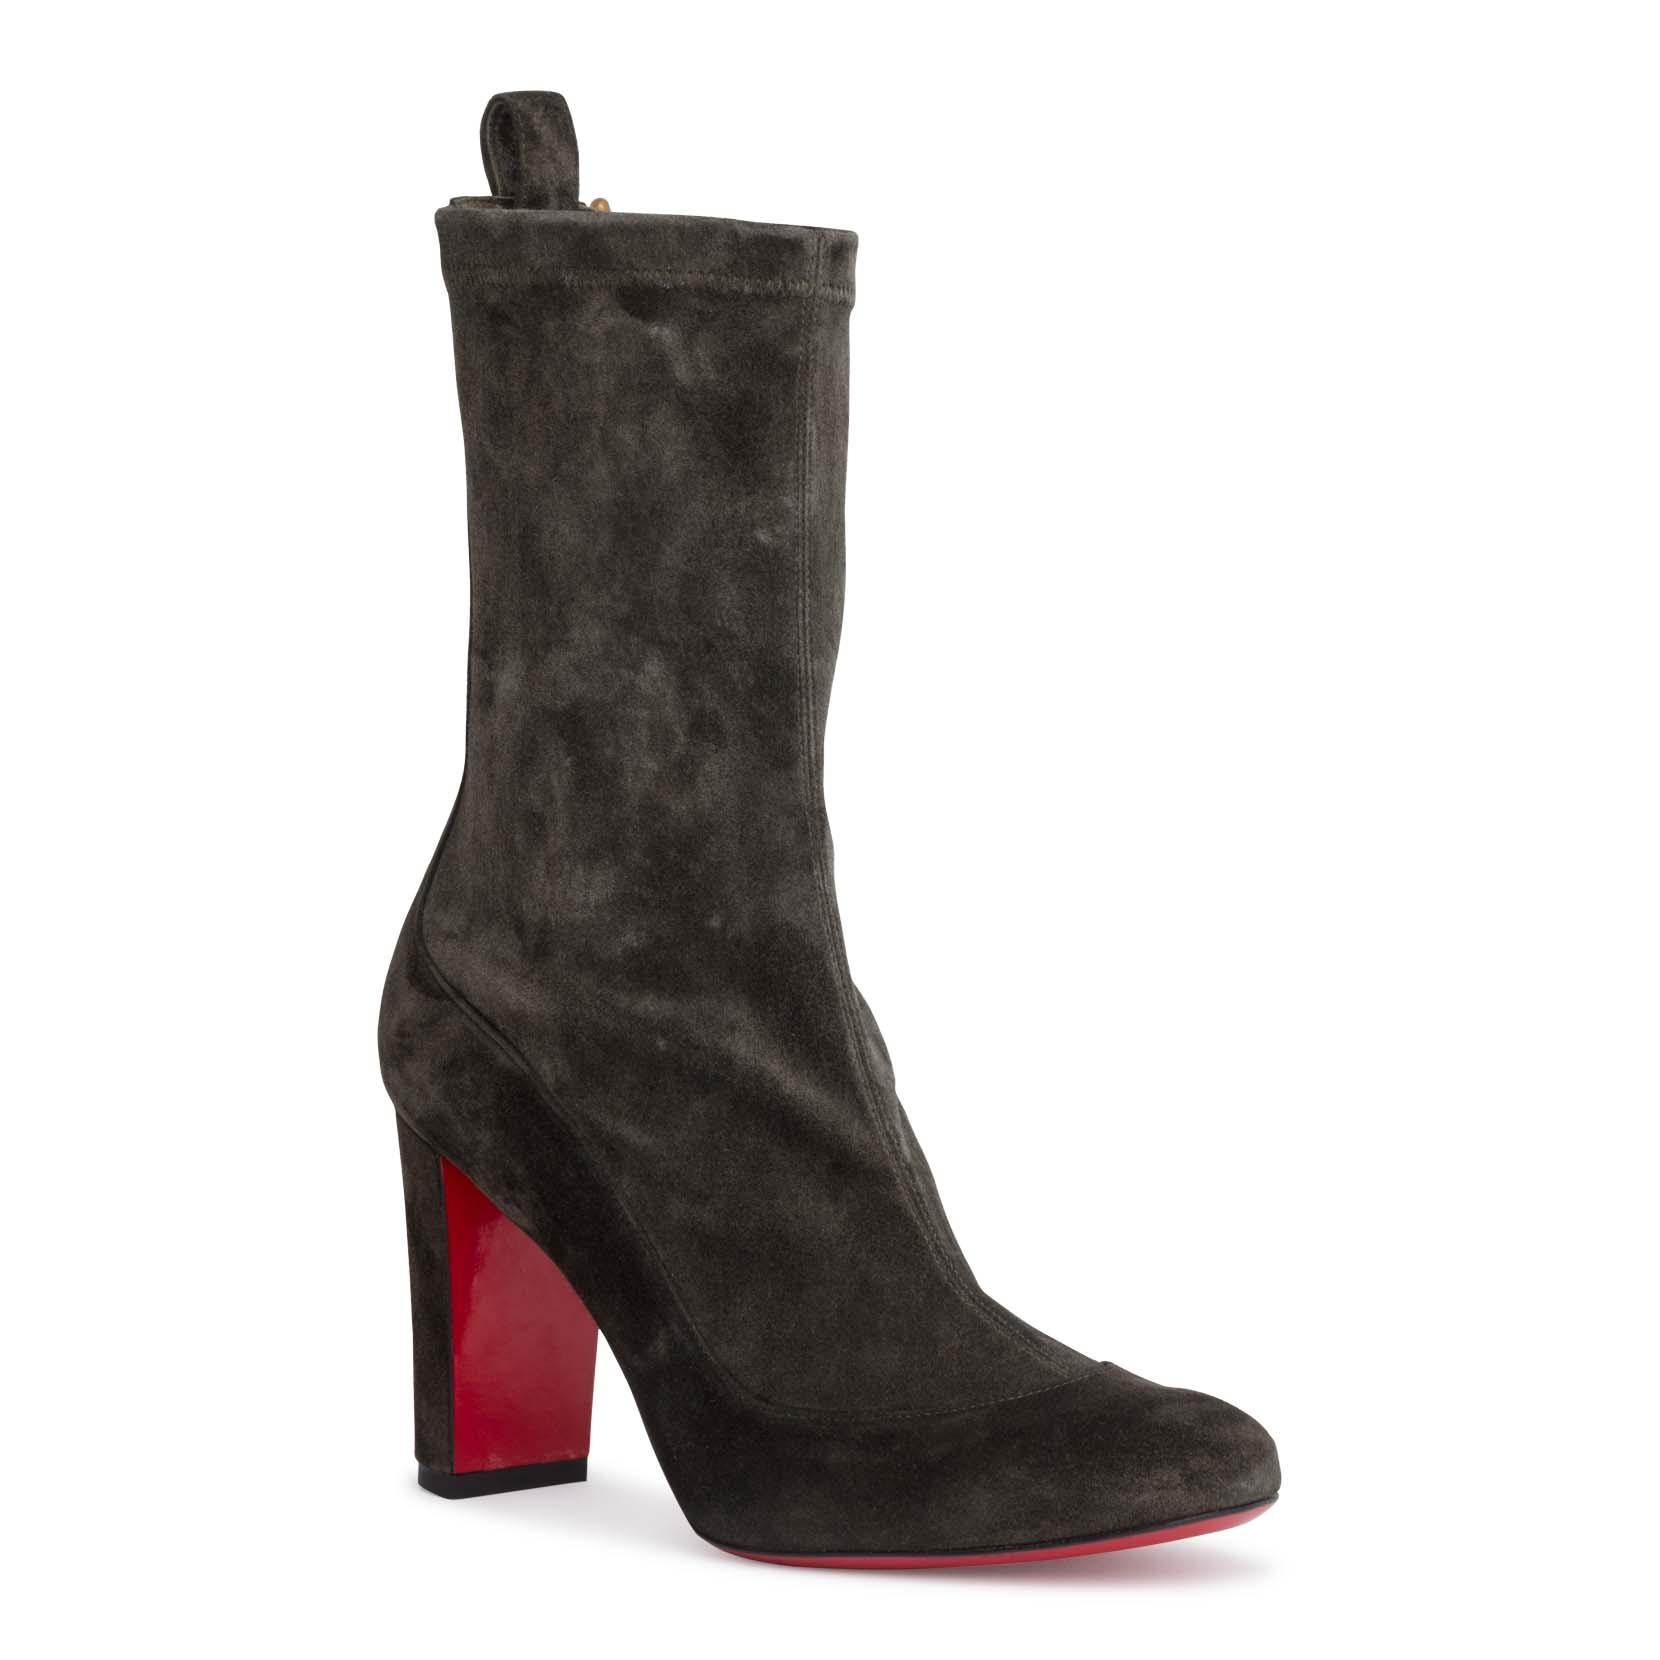 f6d88490763f Christian Louboutin Gena 85 Khaki Stretch Suede Boots In Brown ...